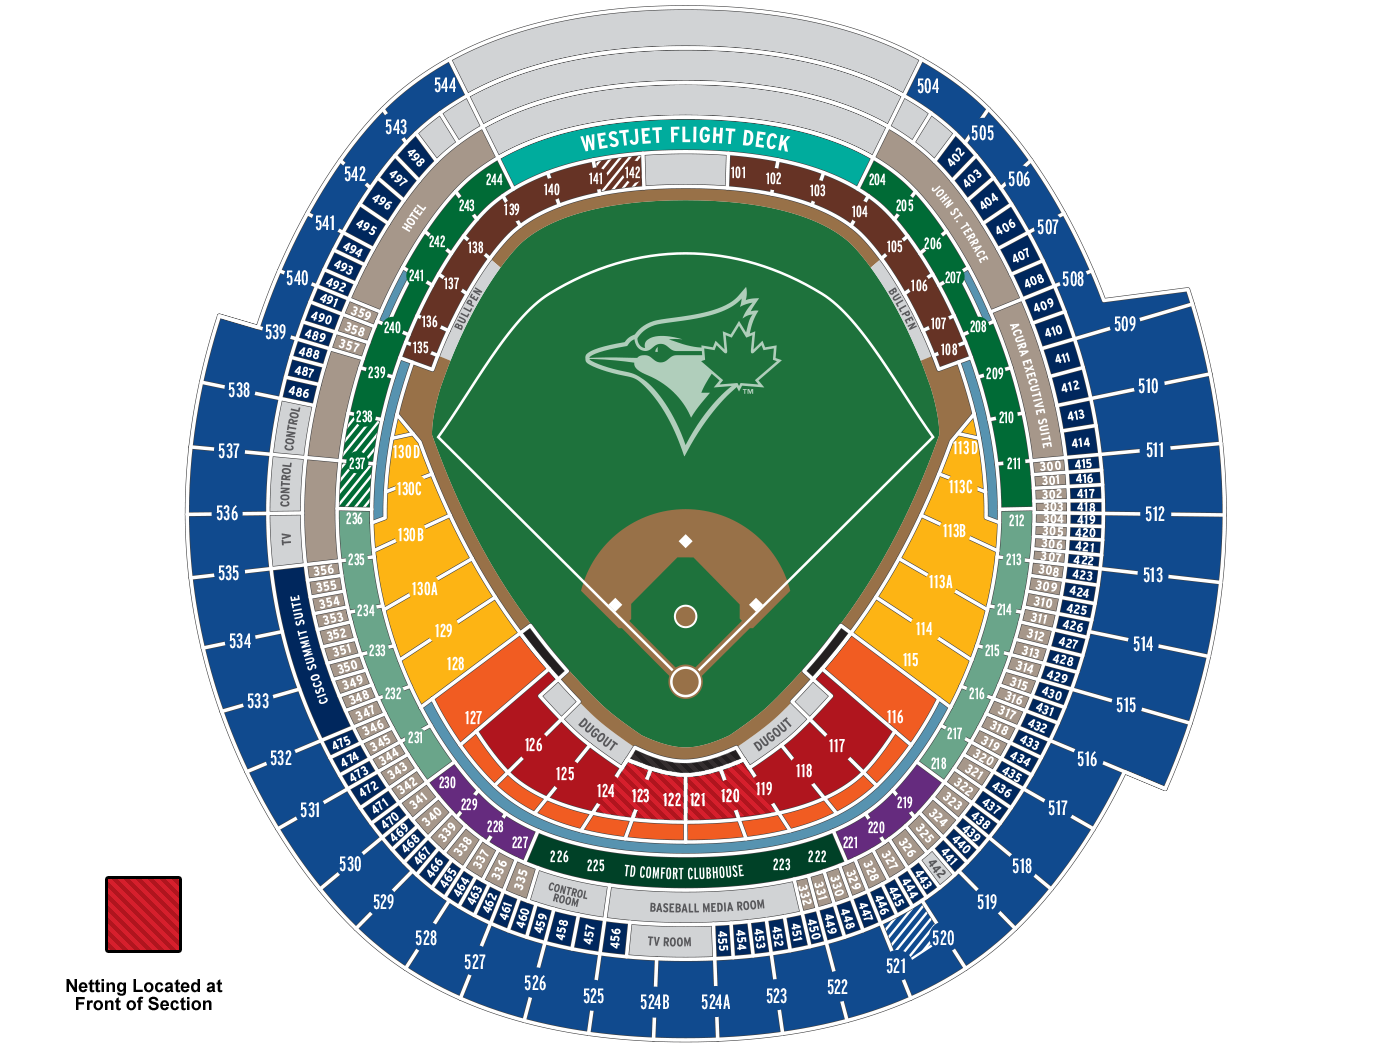 Rogers arena seating plan related keywords amp suggestions rogers - Office Seating Plan Related Keywords Amp Suggestions Rogers Centre Baseball Seating Related Keywords